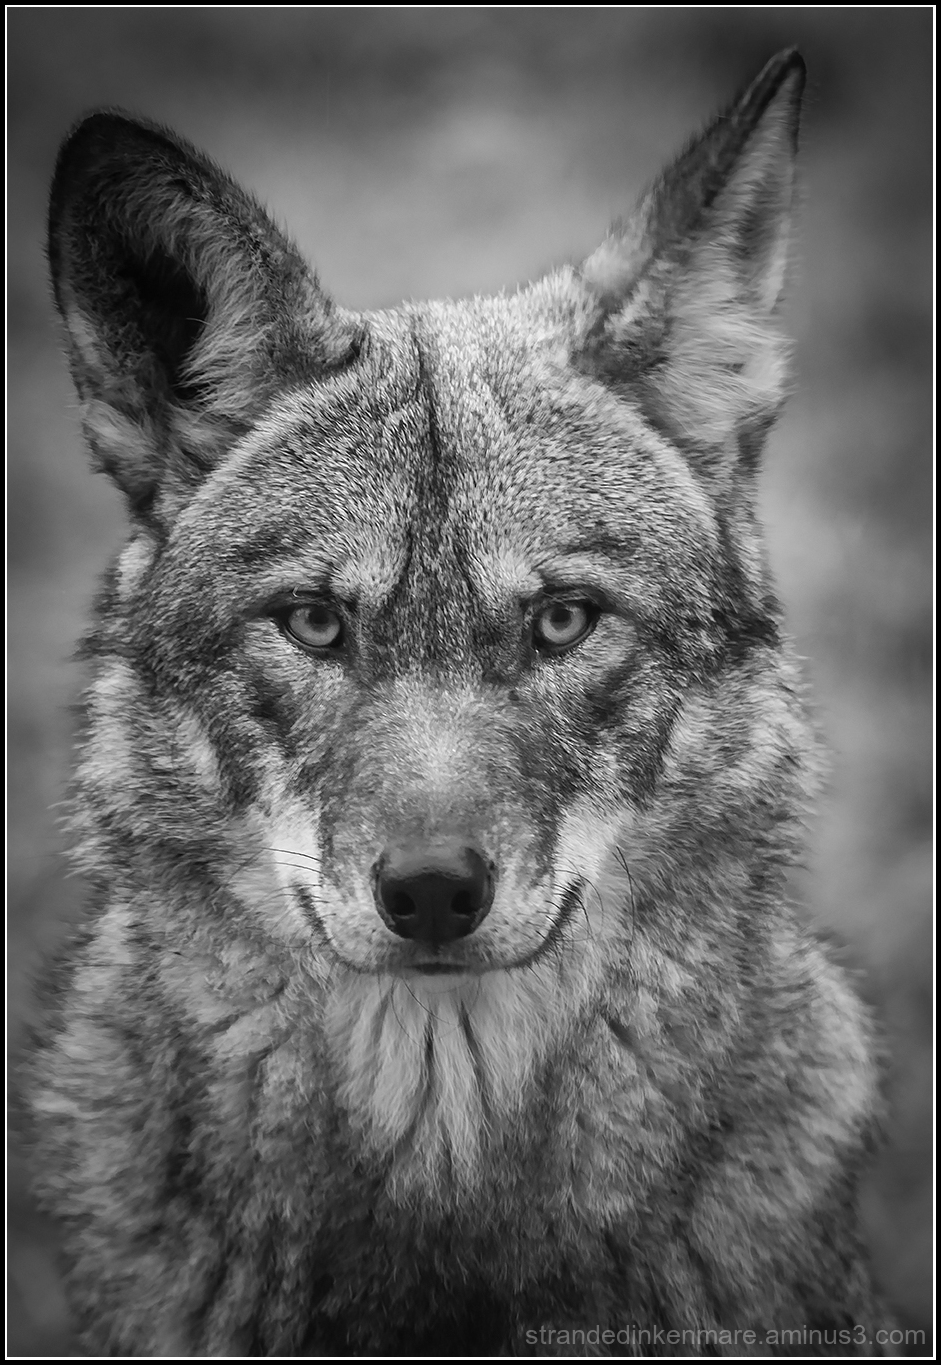 Wulf the Red